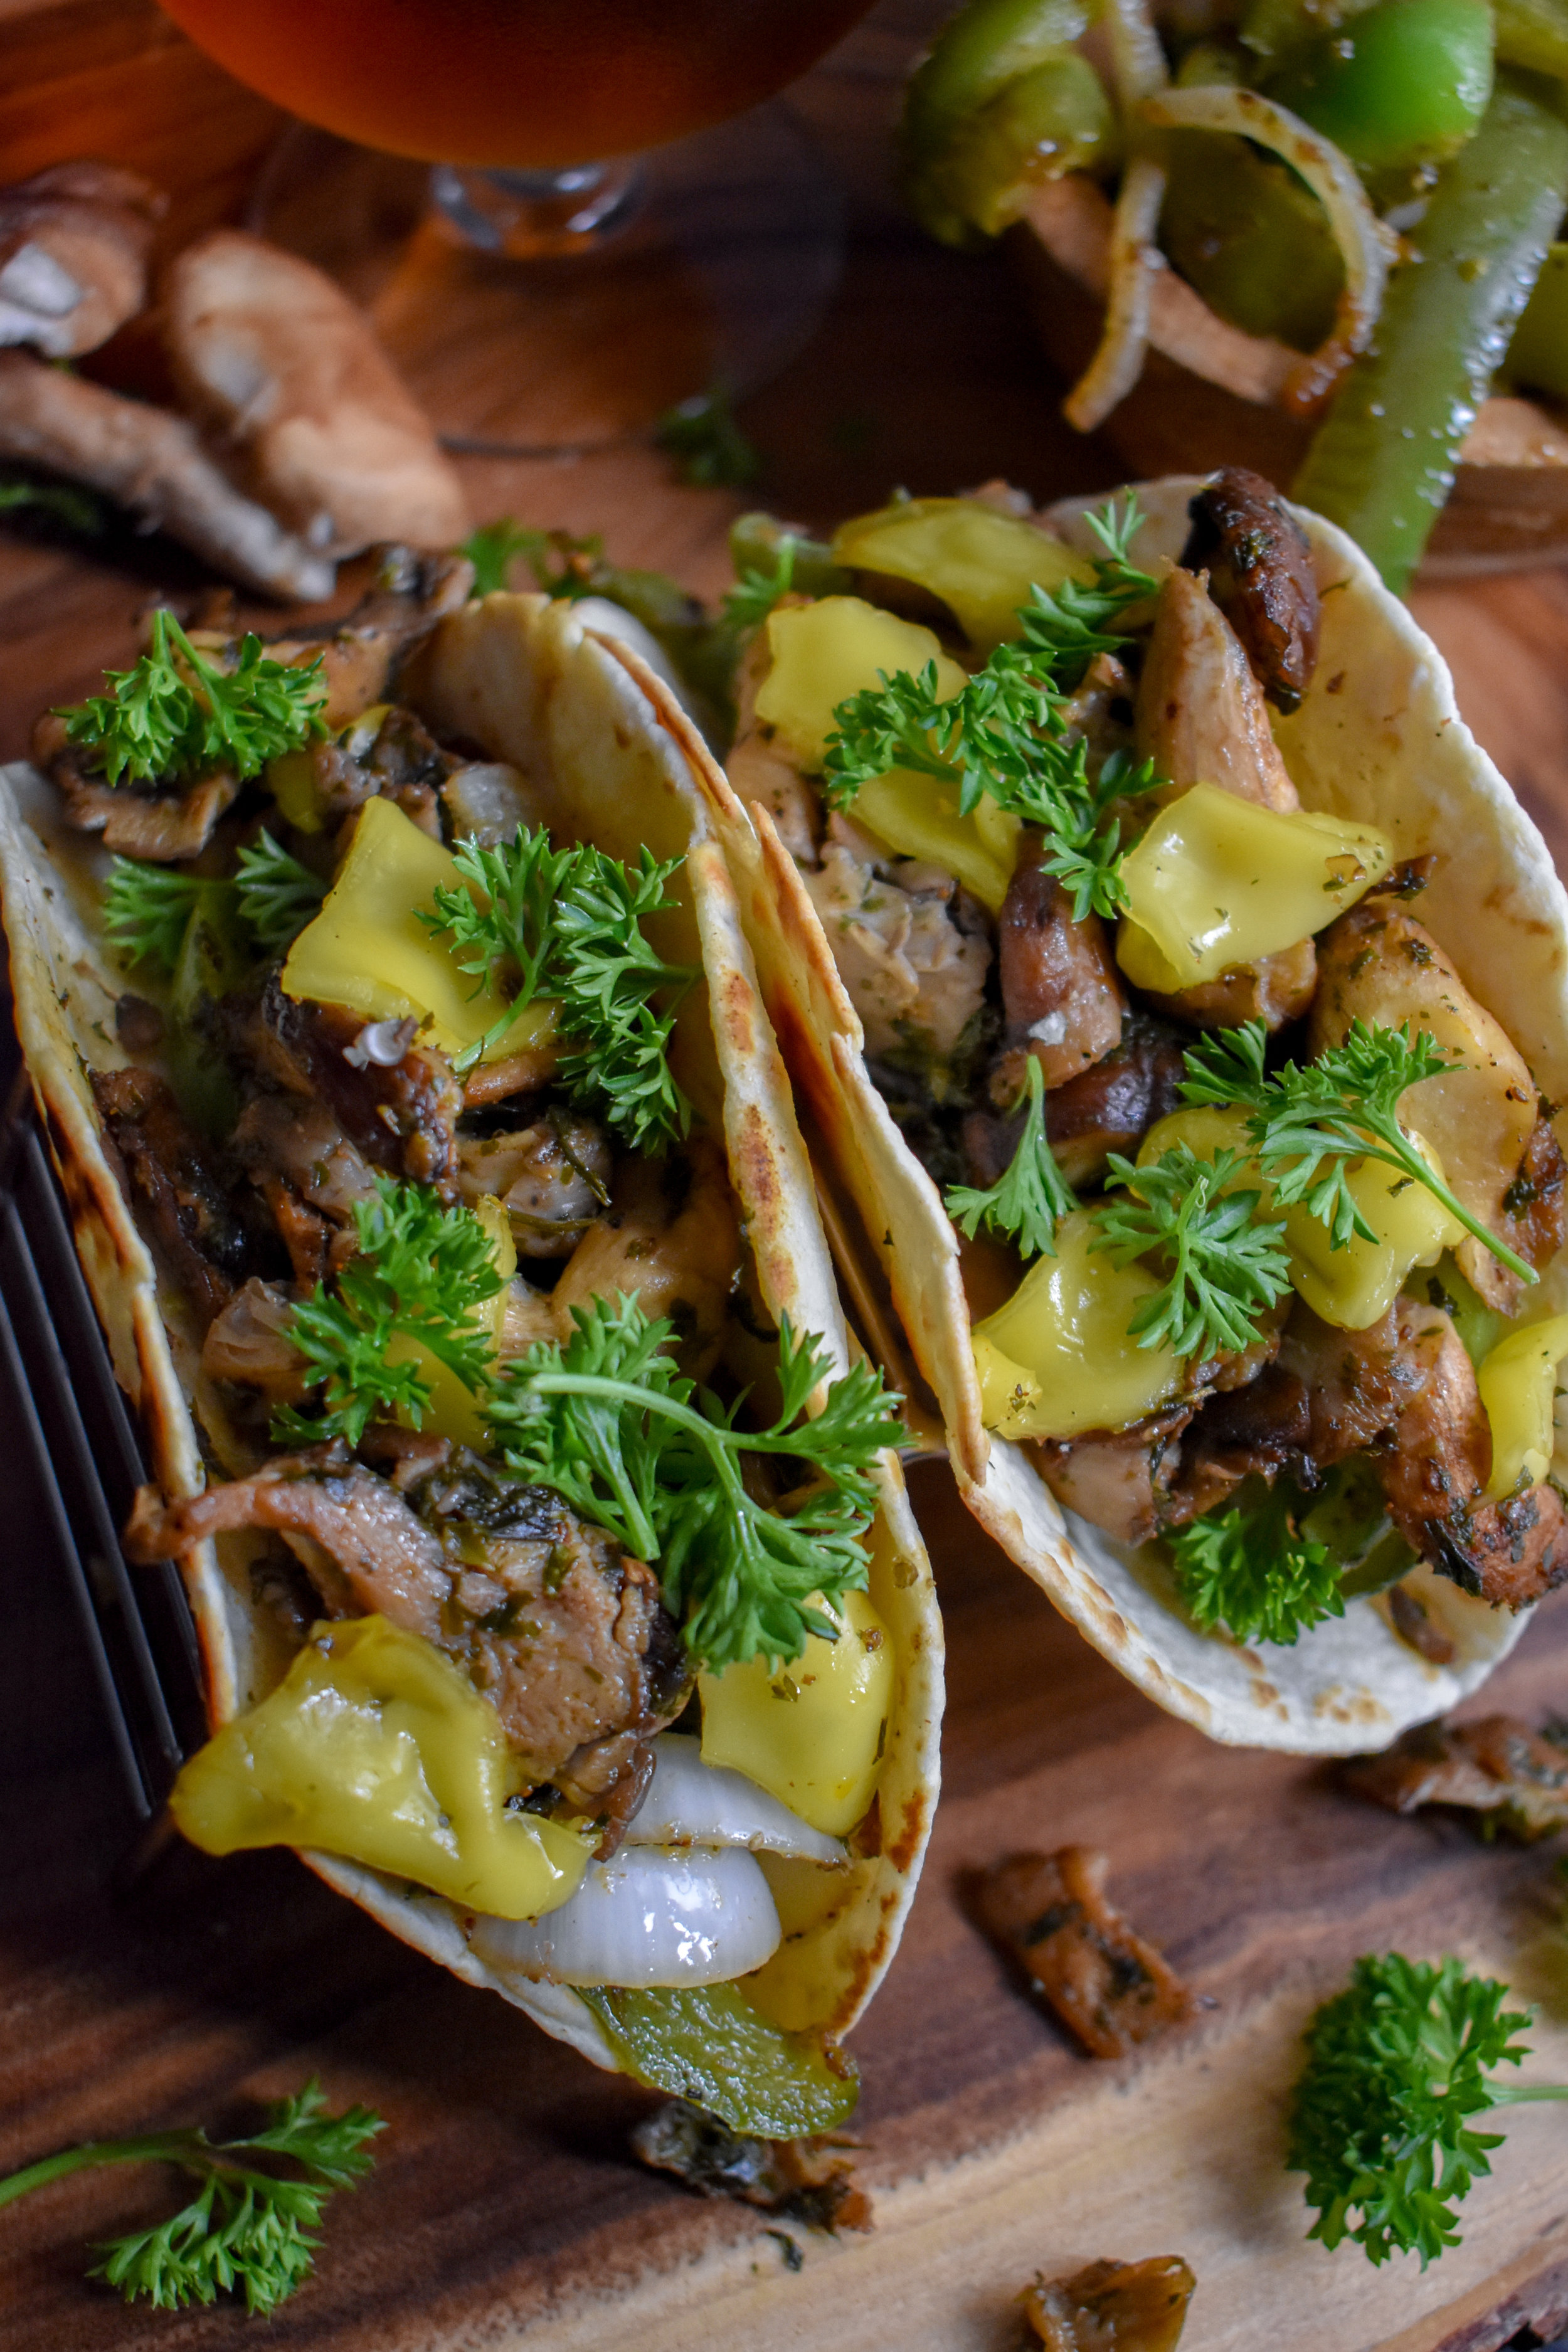 5. To finish, I like to brown some tortillas on the stove top to give them a slight crisp. Load into the taco and top with some parsley. Enjoy!